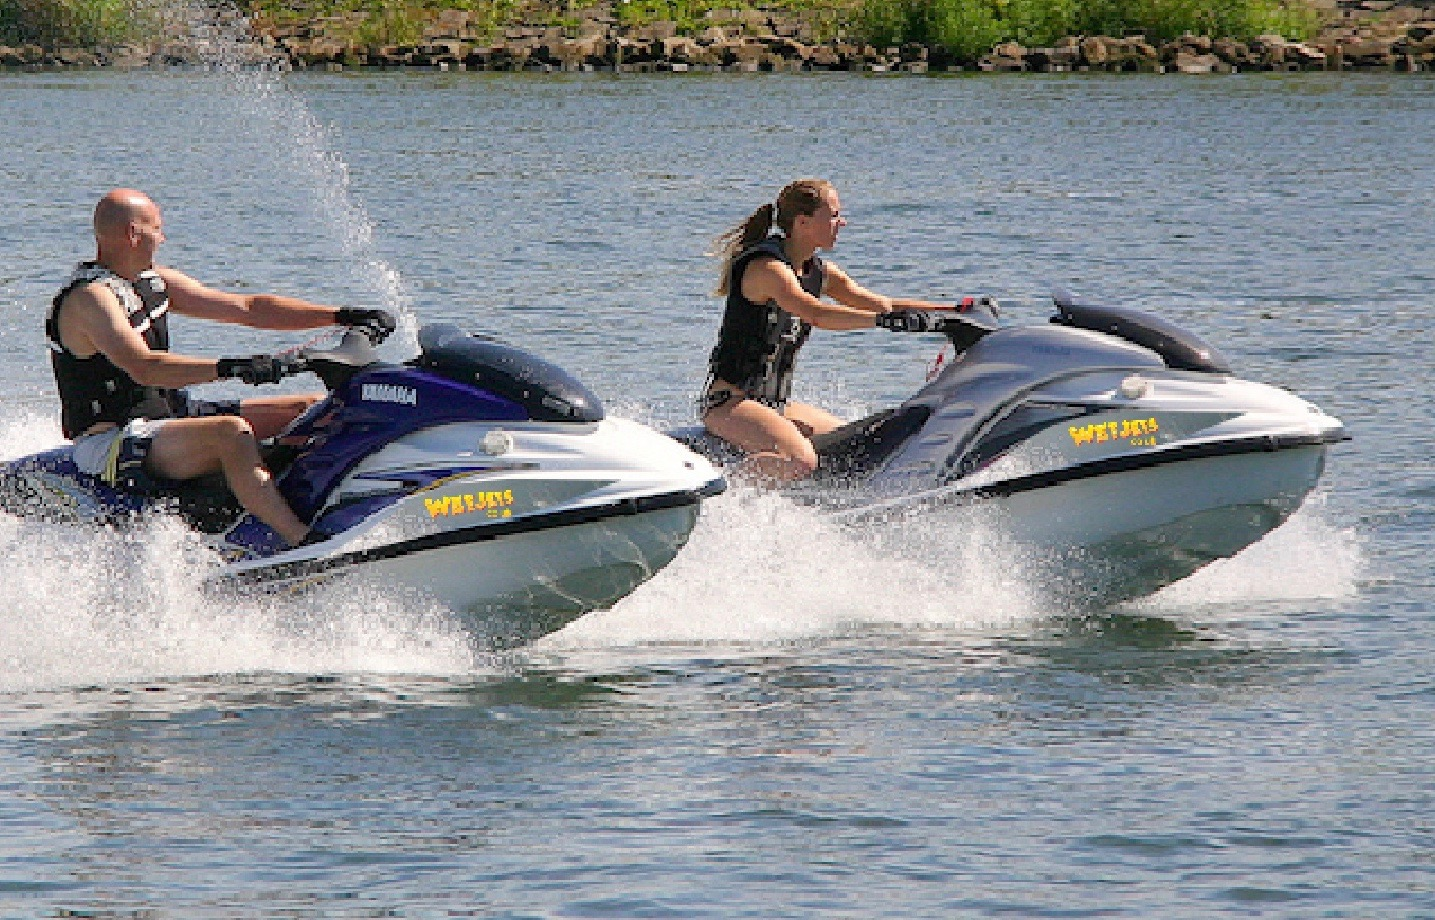 A man and a woman trying out the WetJets jet ski equipment on Auchenreoch Loch near Dumfries